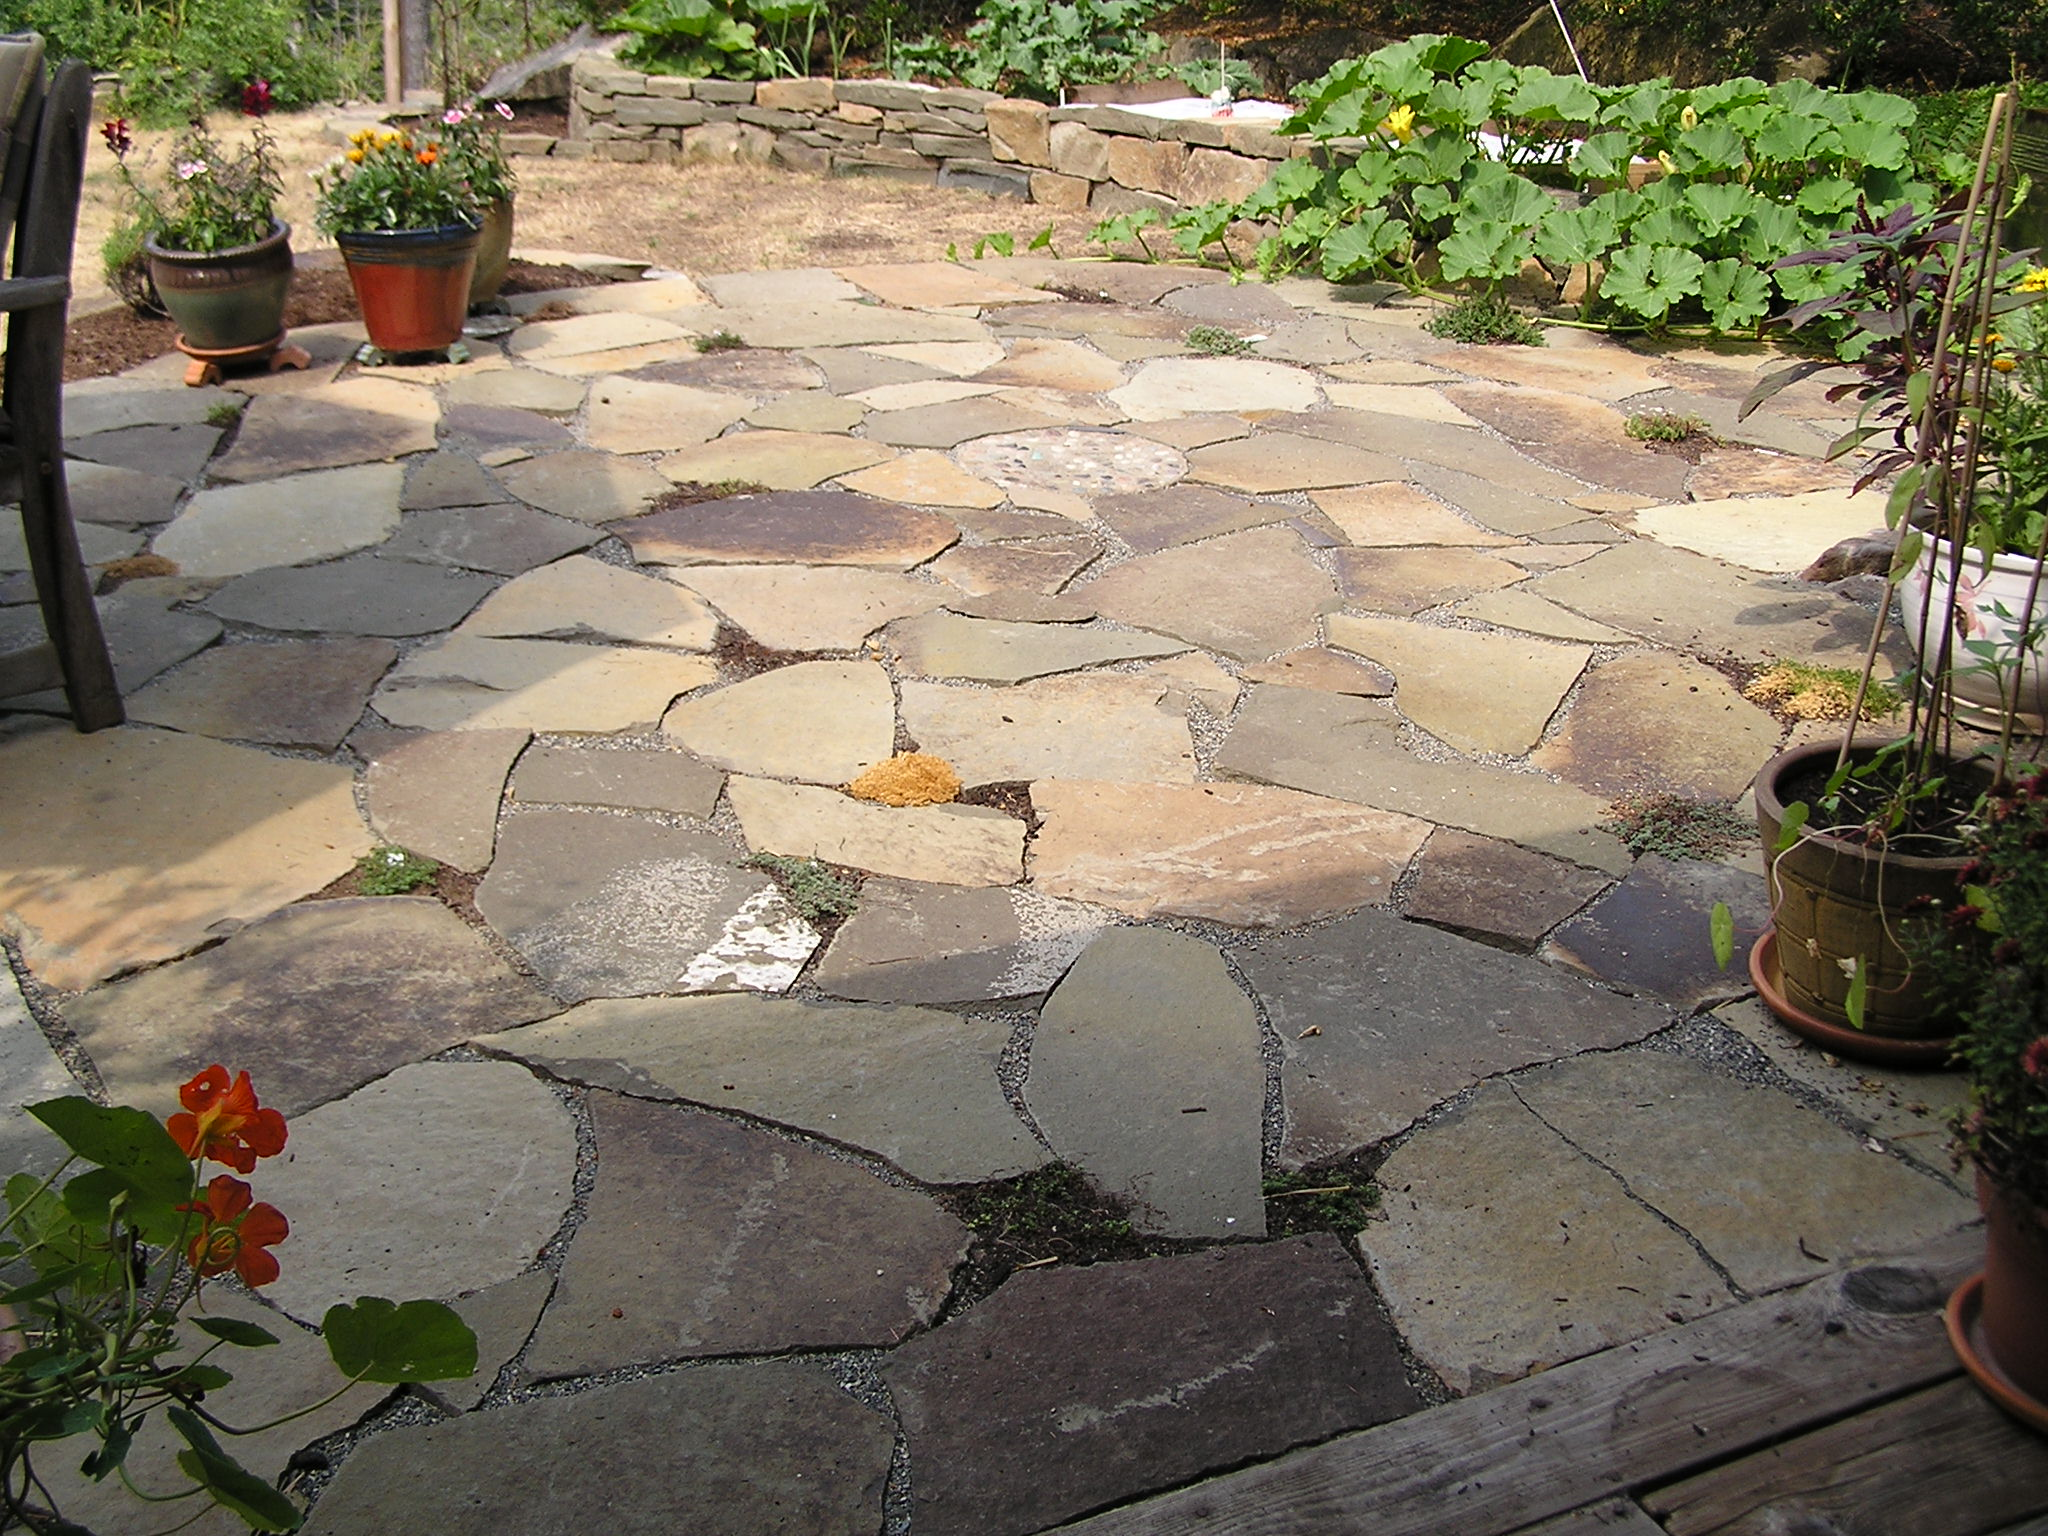 Patio Pictures Enchanting Of Sandstone Patio Designs Image